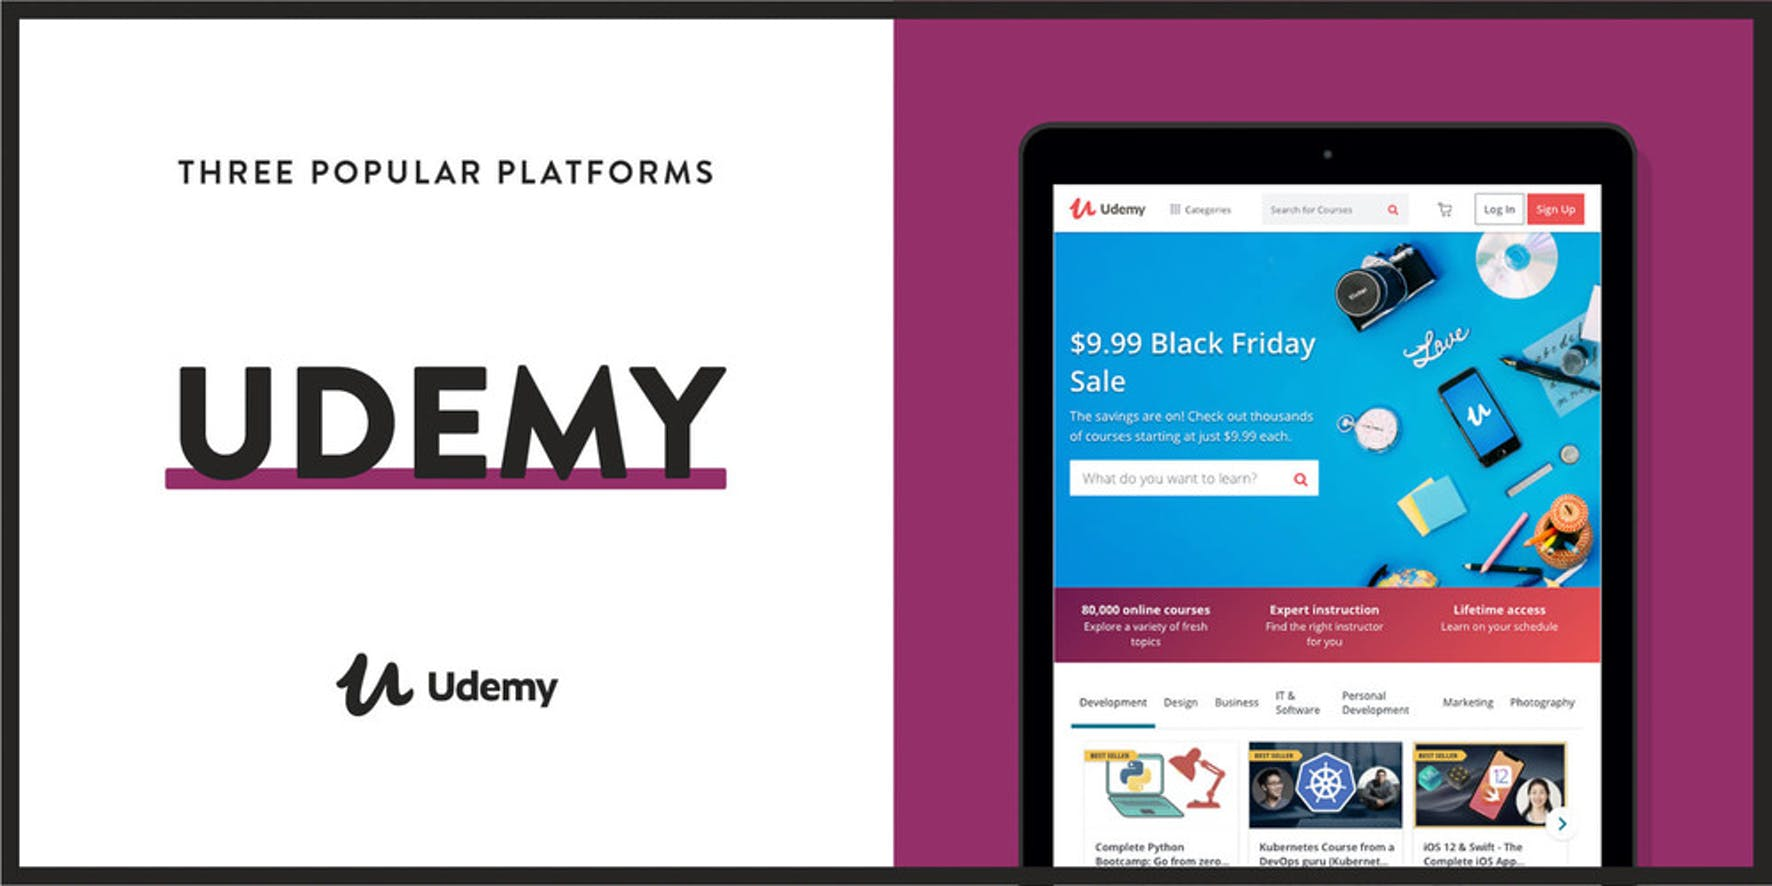 Udemy is a popular platform to create and sell courses